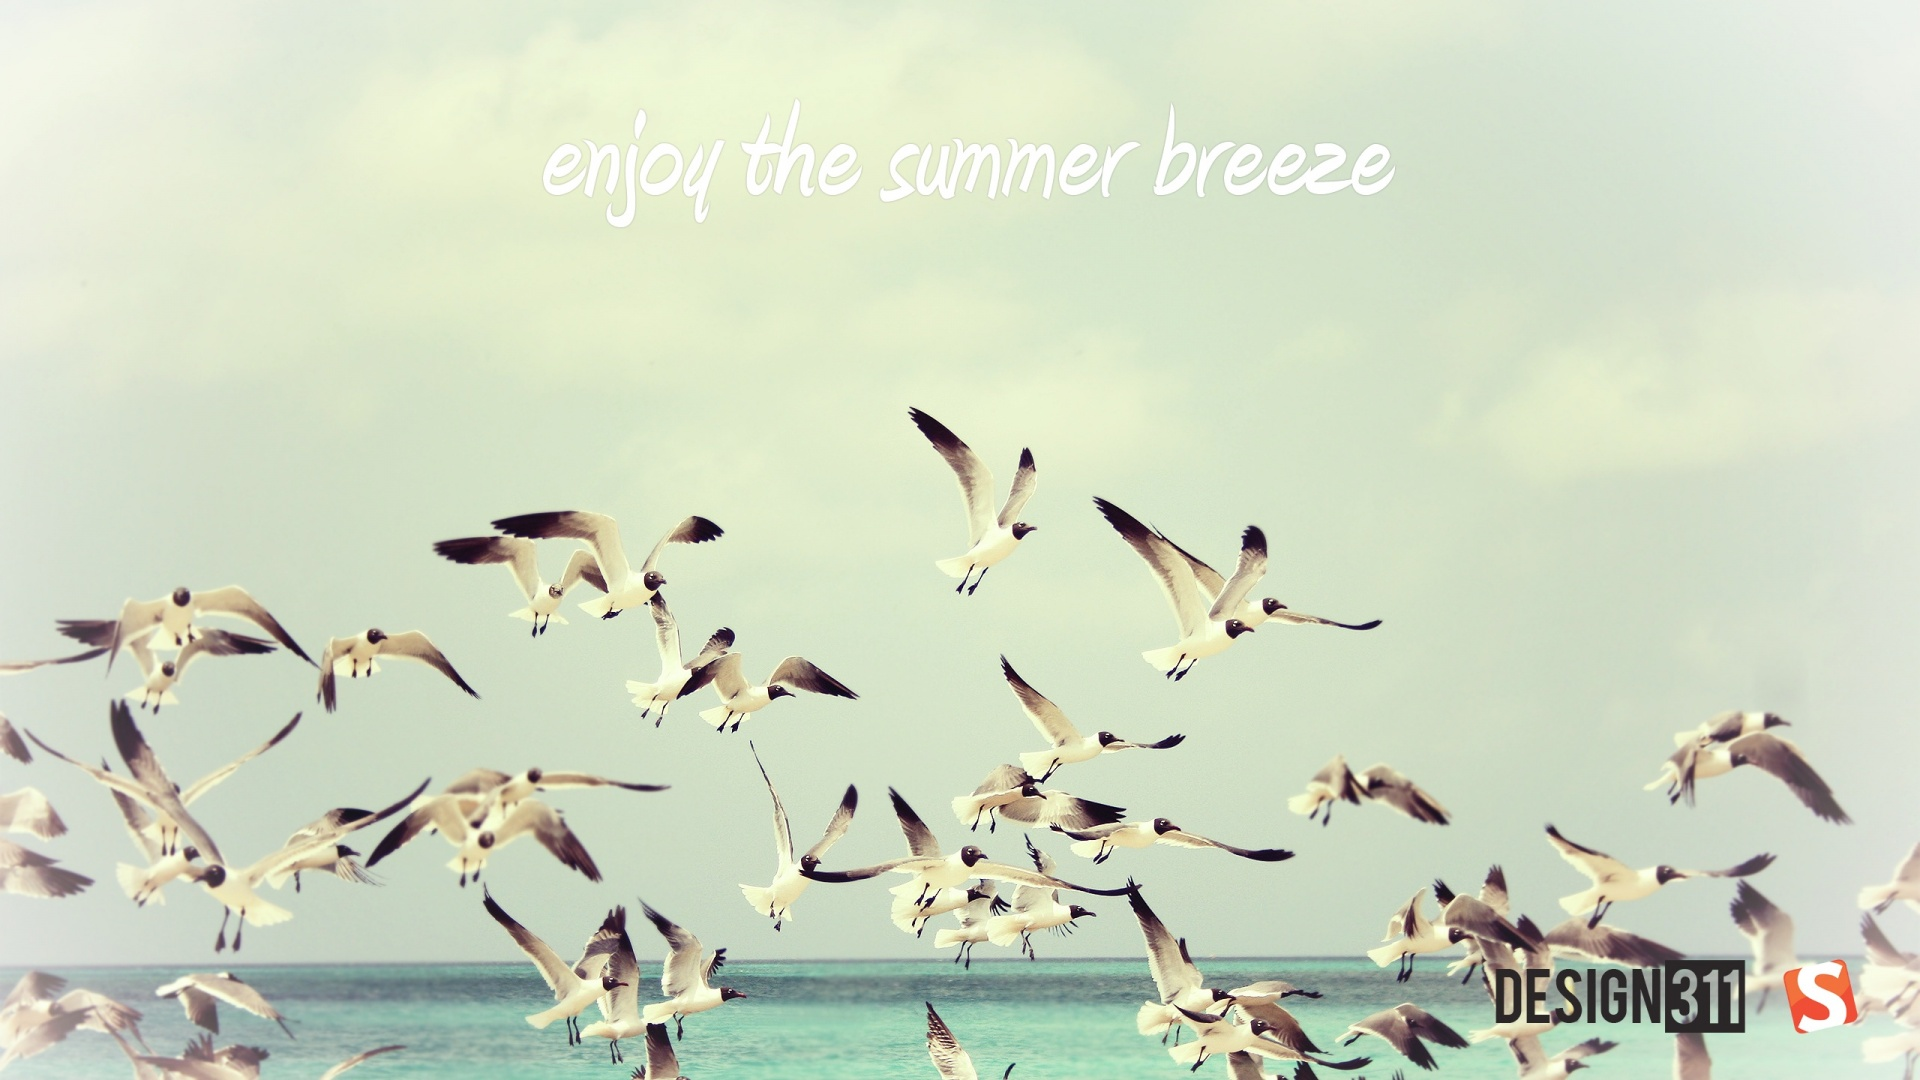 1920x1080 summer breeze desktop pc and mac wallpaper